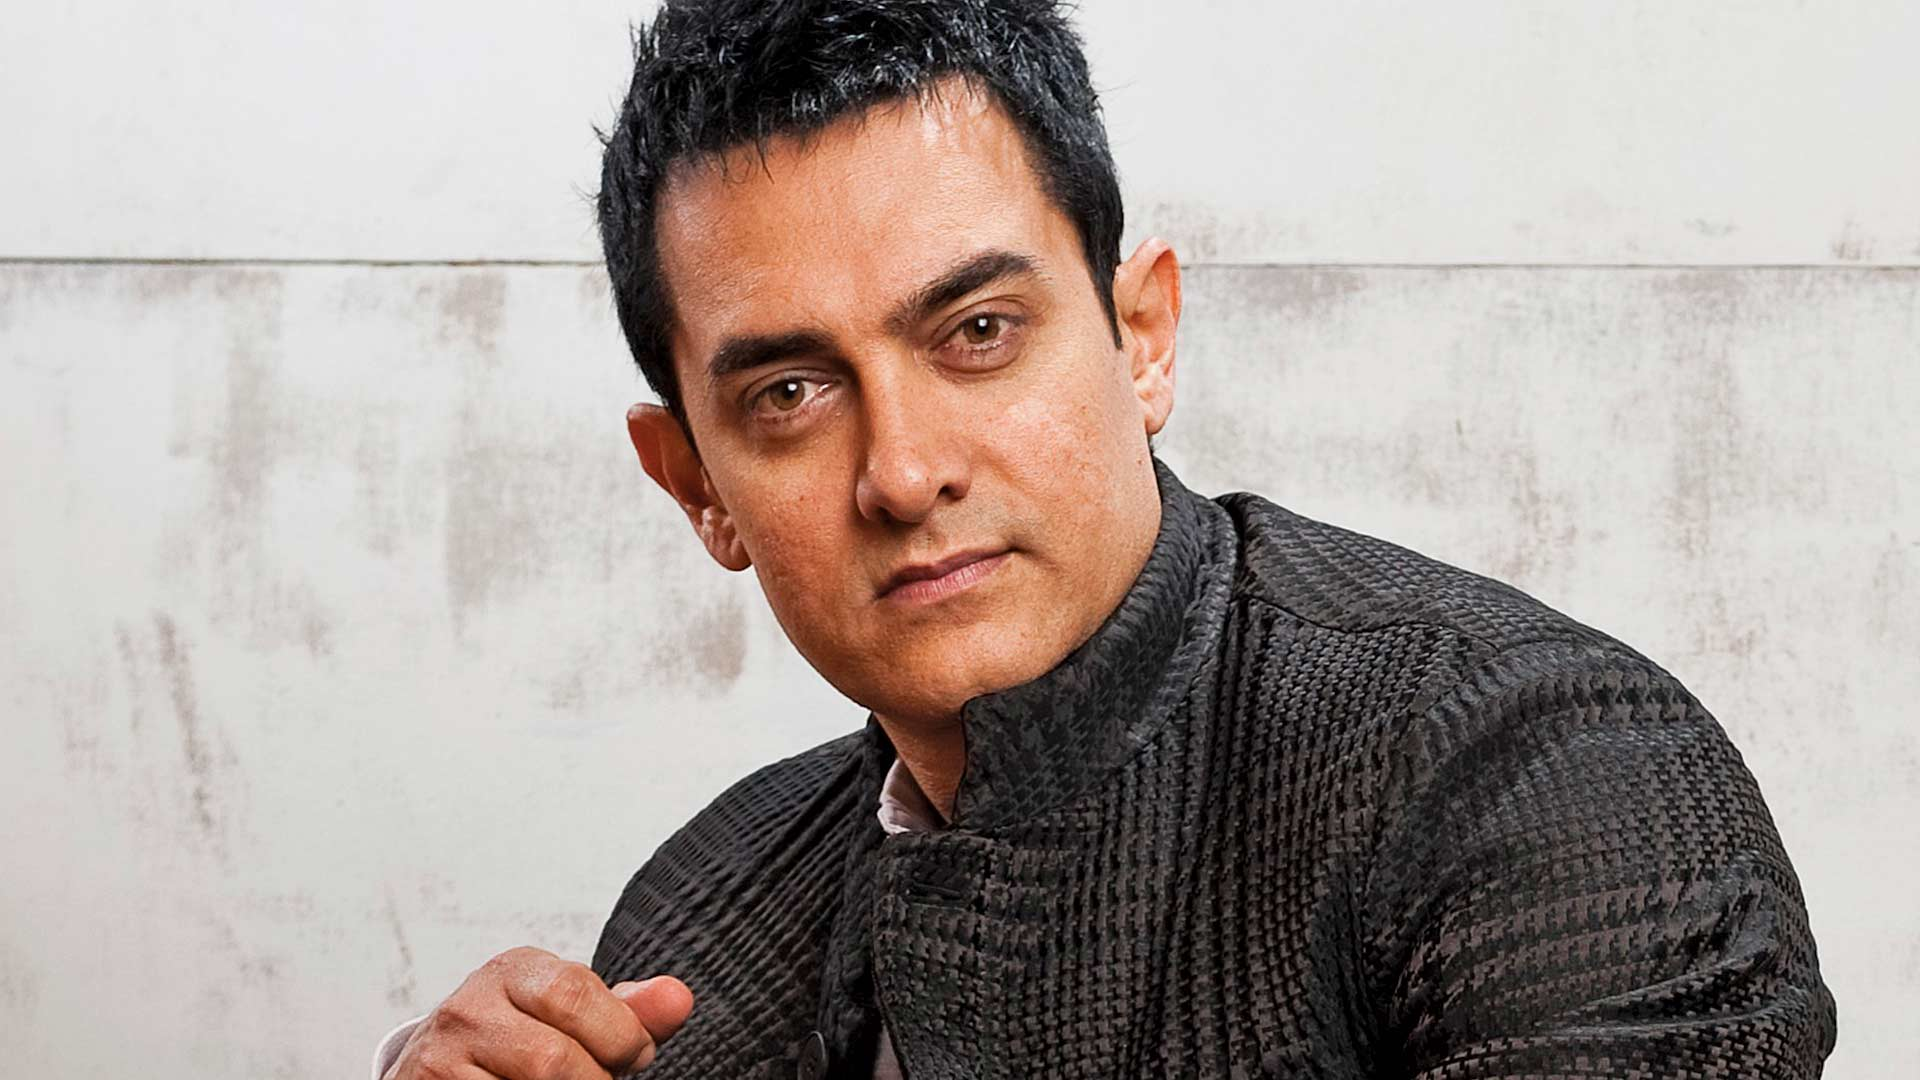 Police compliant against Bollywood actor Aamir Khan over intolerance remark